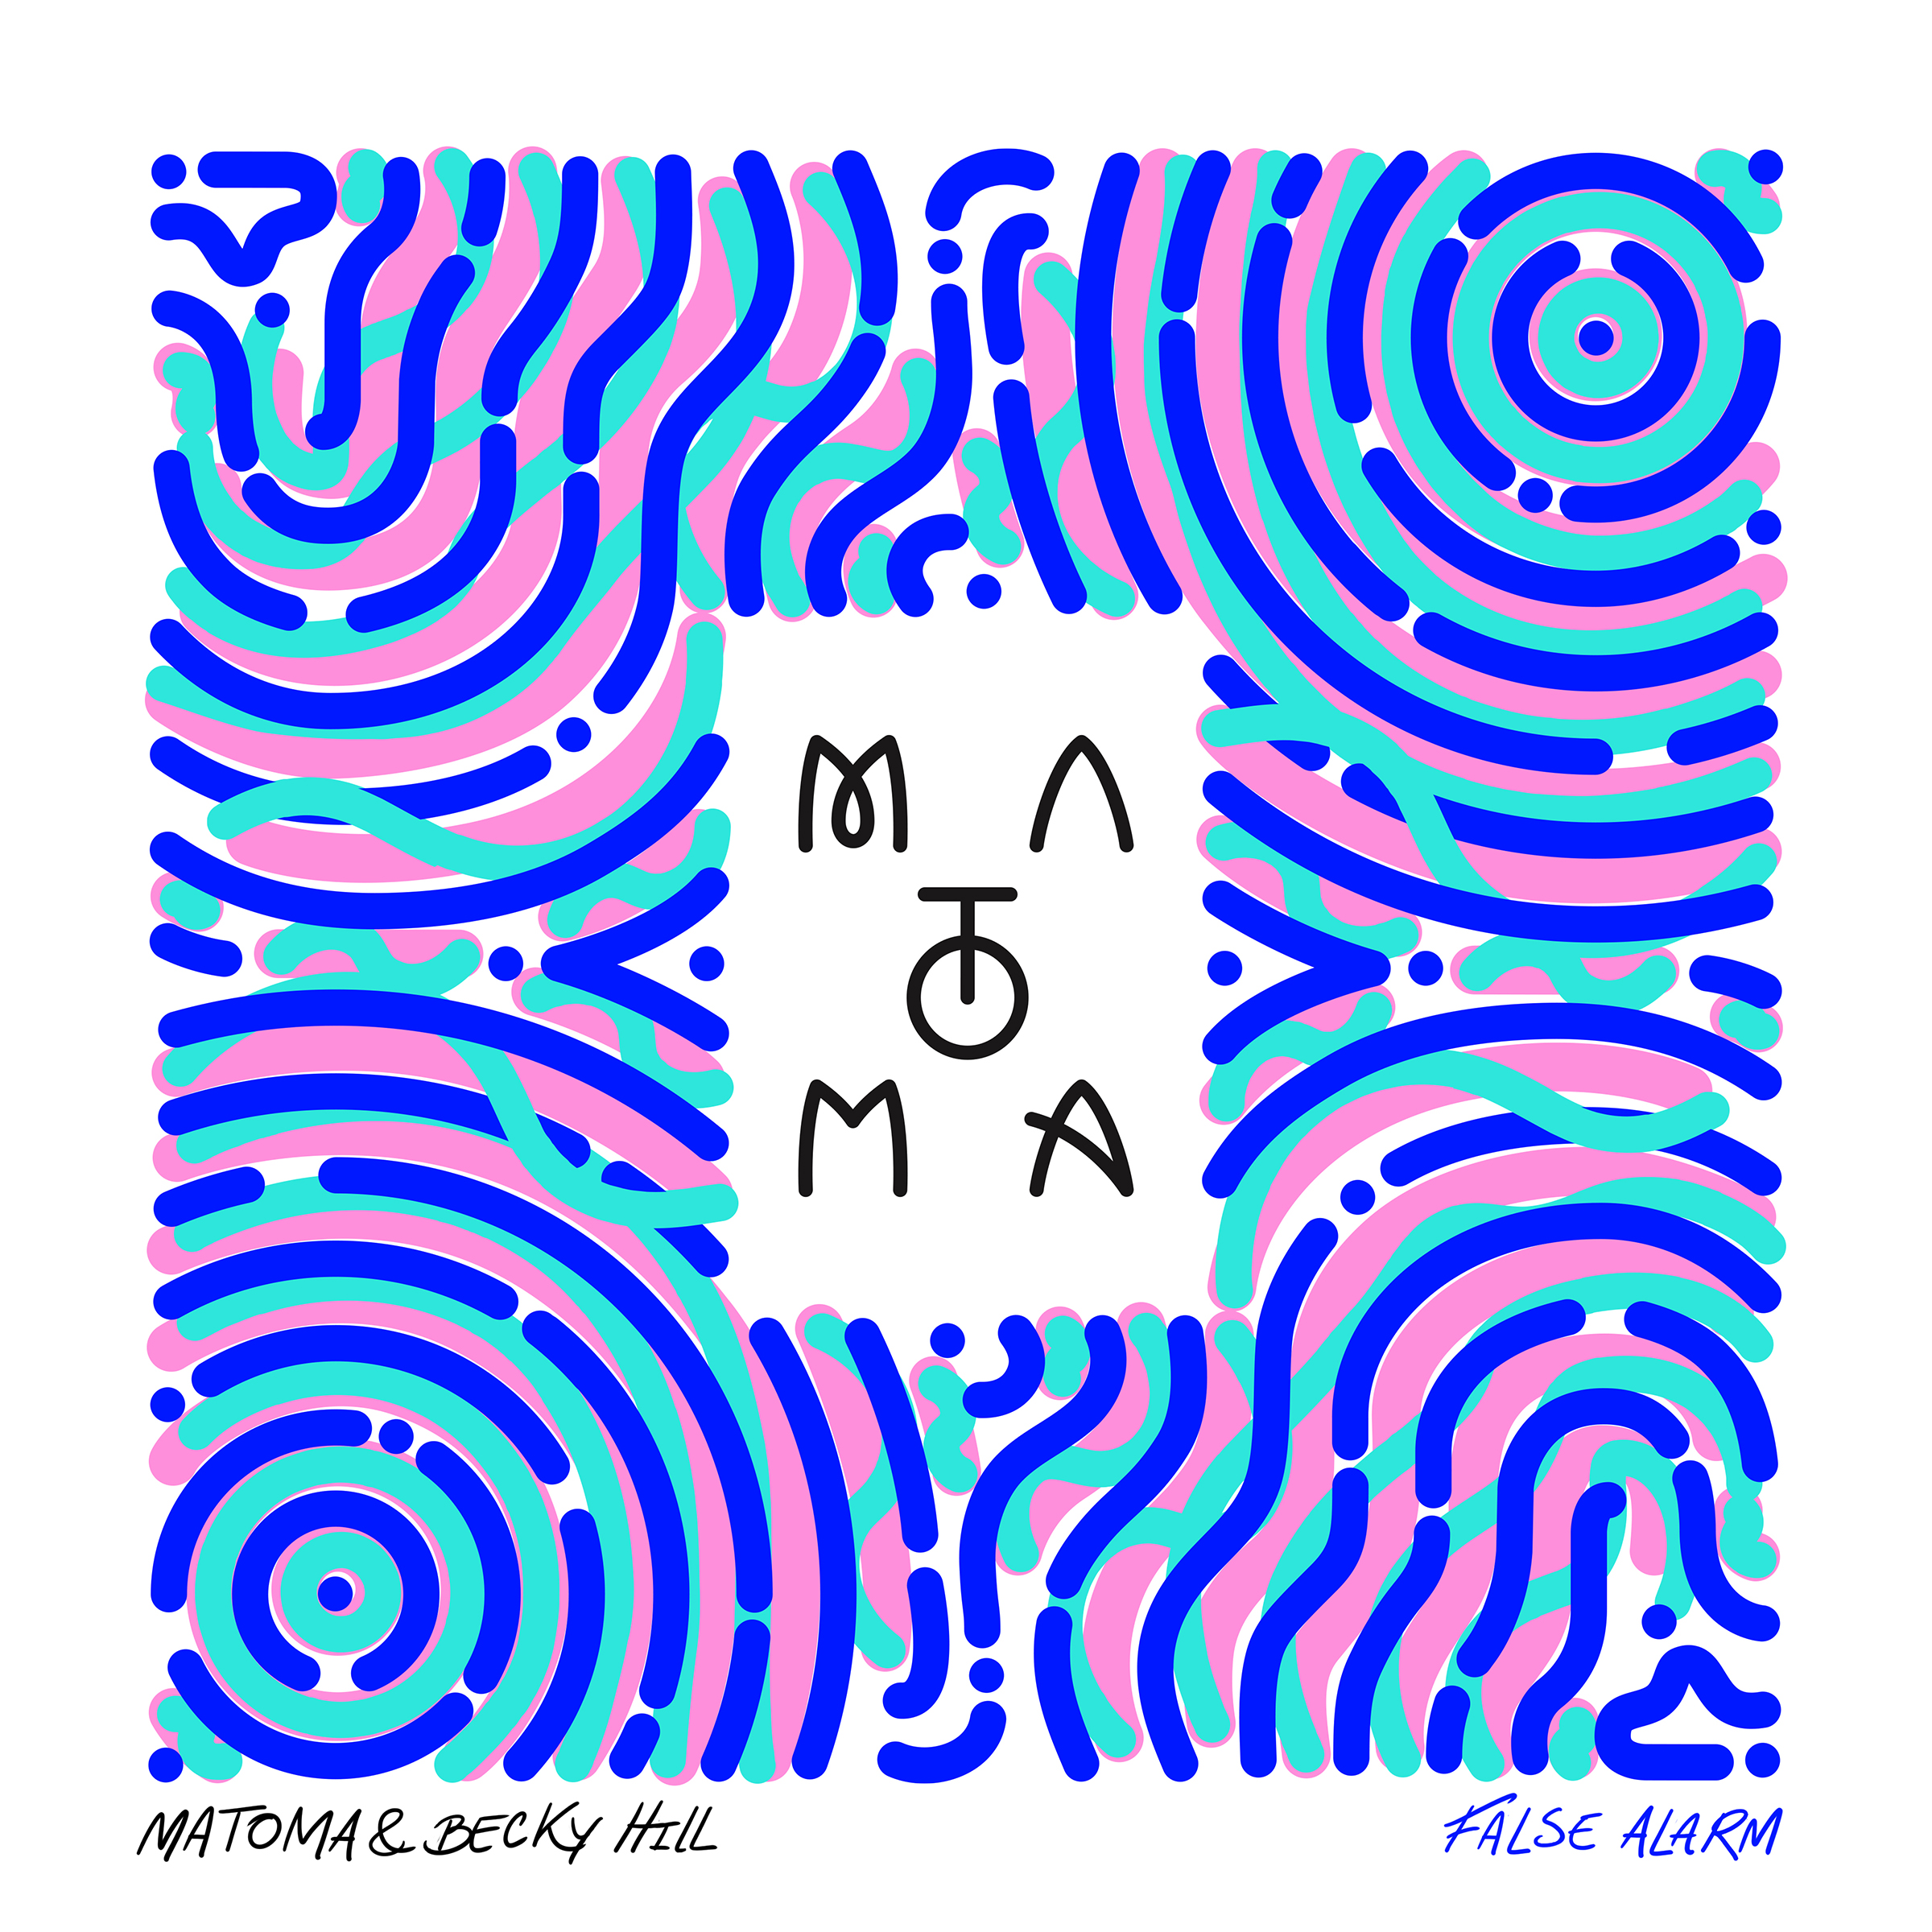 Matoma, Becky Hill - False Alarm